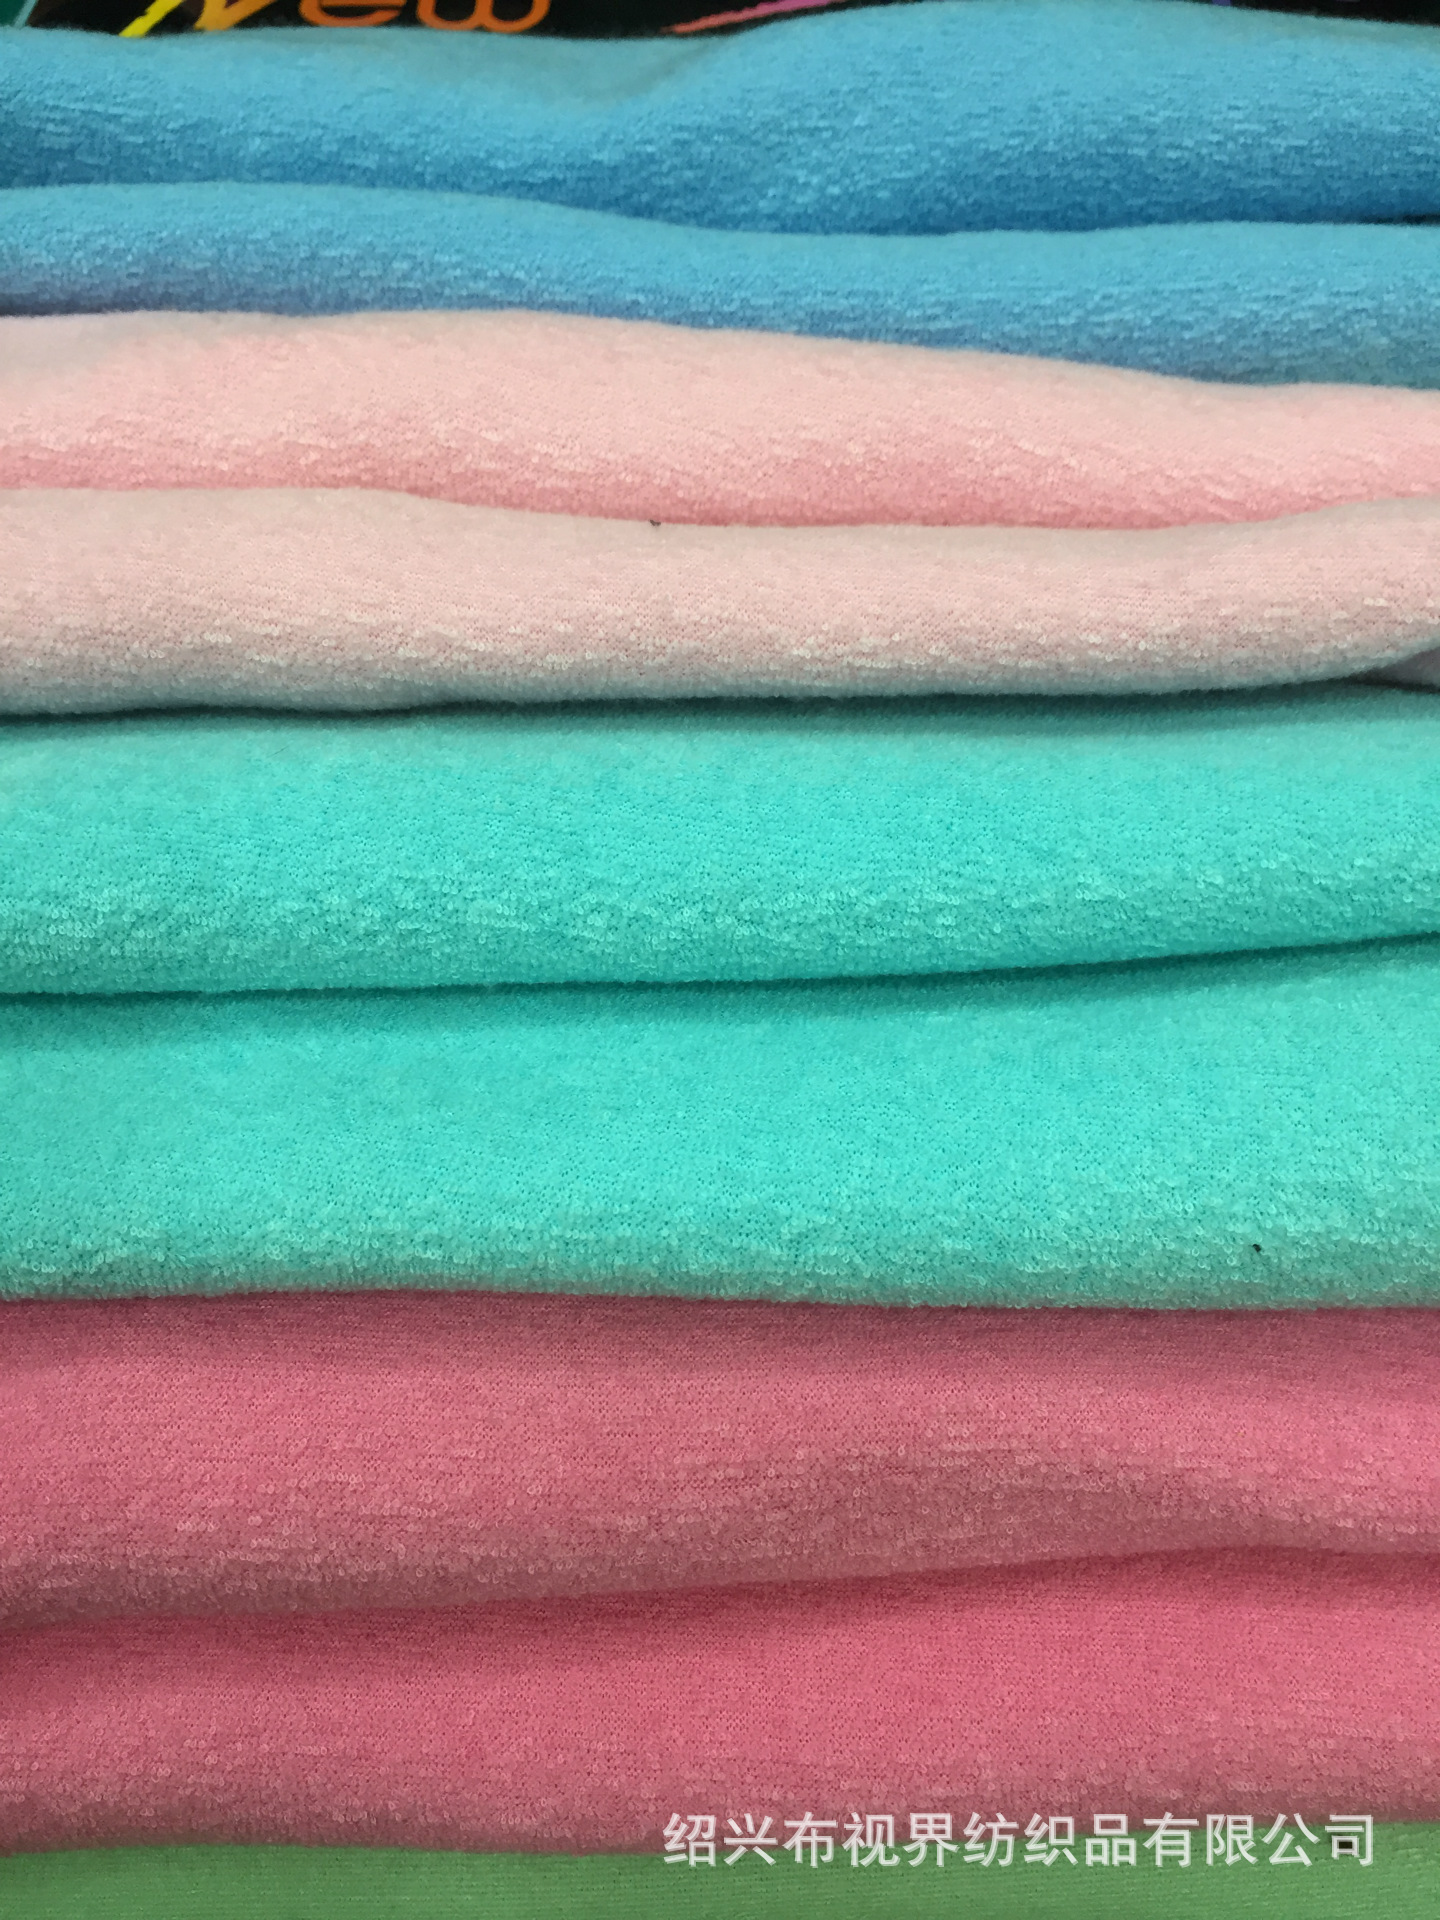 Vải French Terry (Vấy cá)   Manufacturers specializing in the production of high-quality polyester